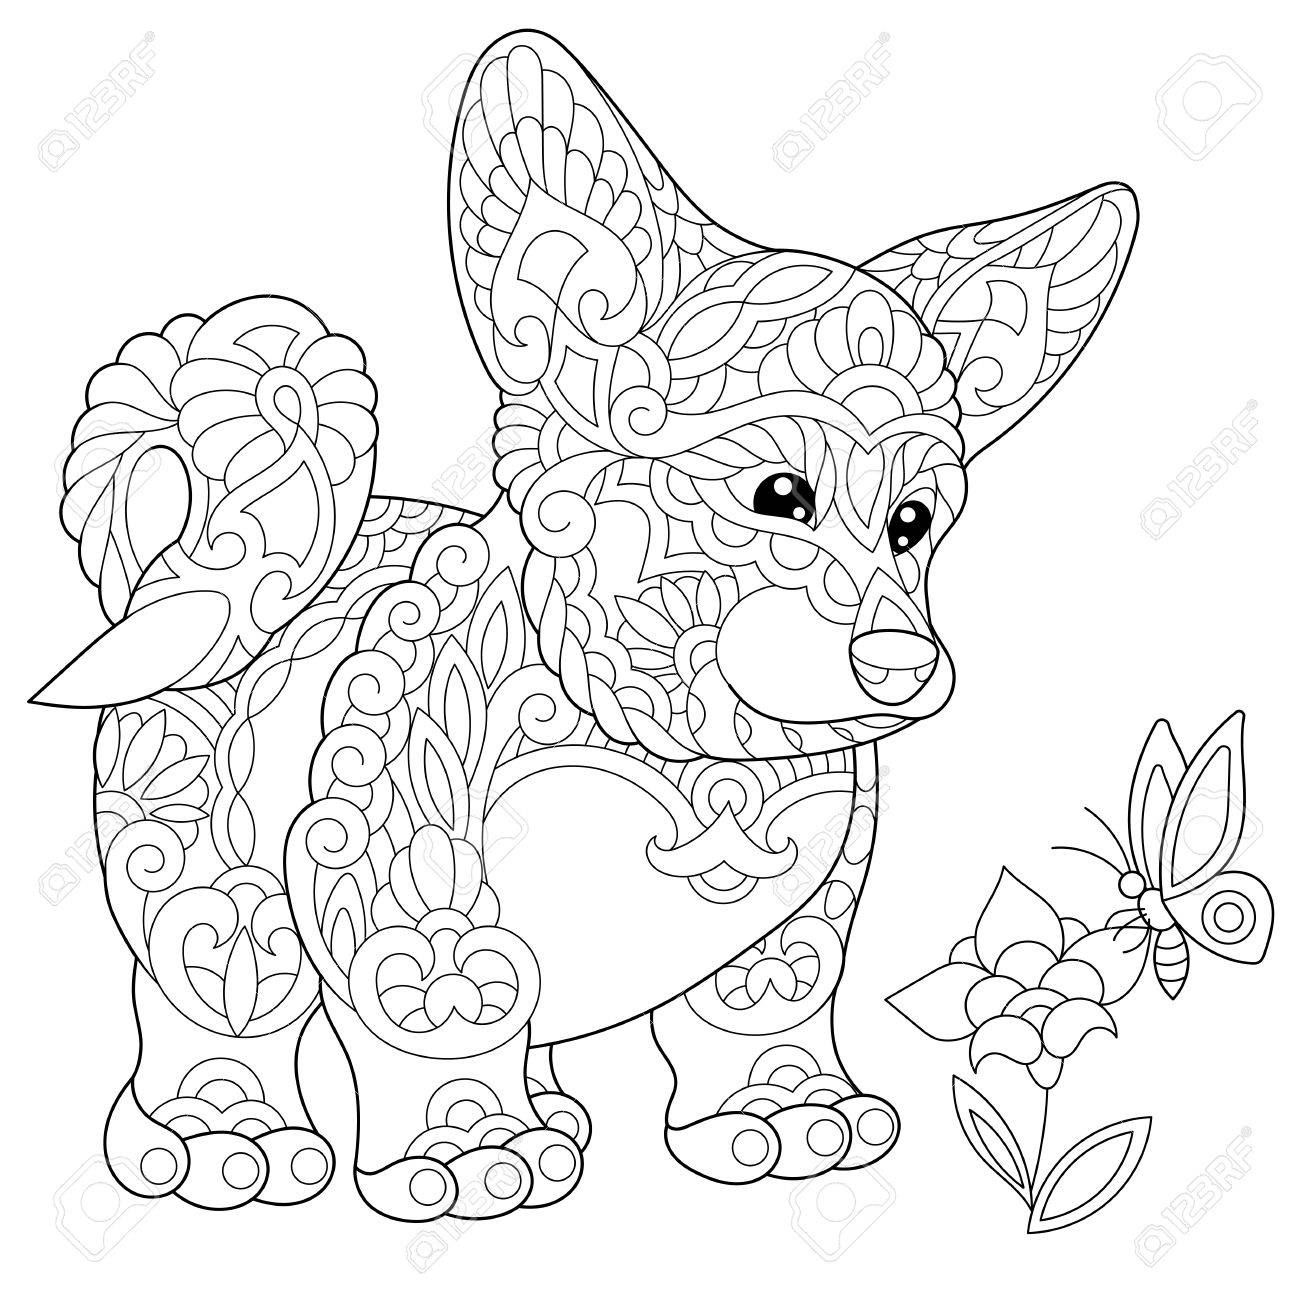 Coloring page of welsh corgi dog and butterfly on a flower. Freehand sketch drawing for adult antistress coloring book in zentangle style. - 85857382